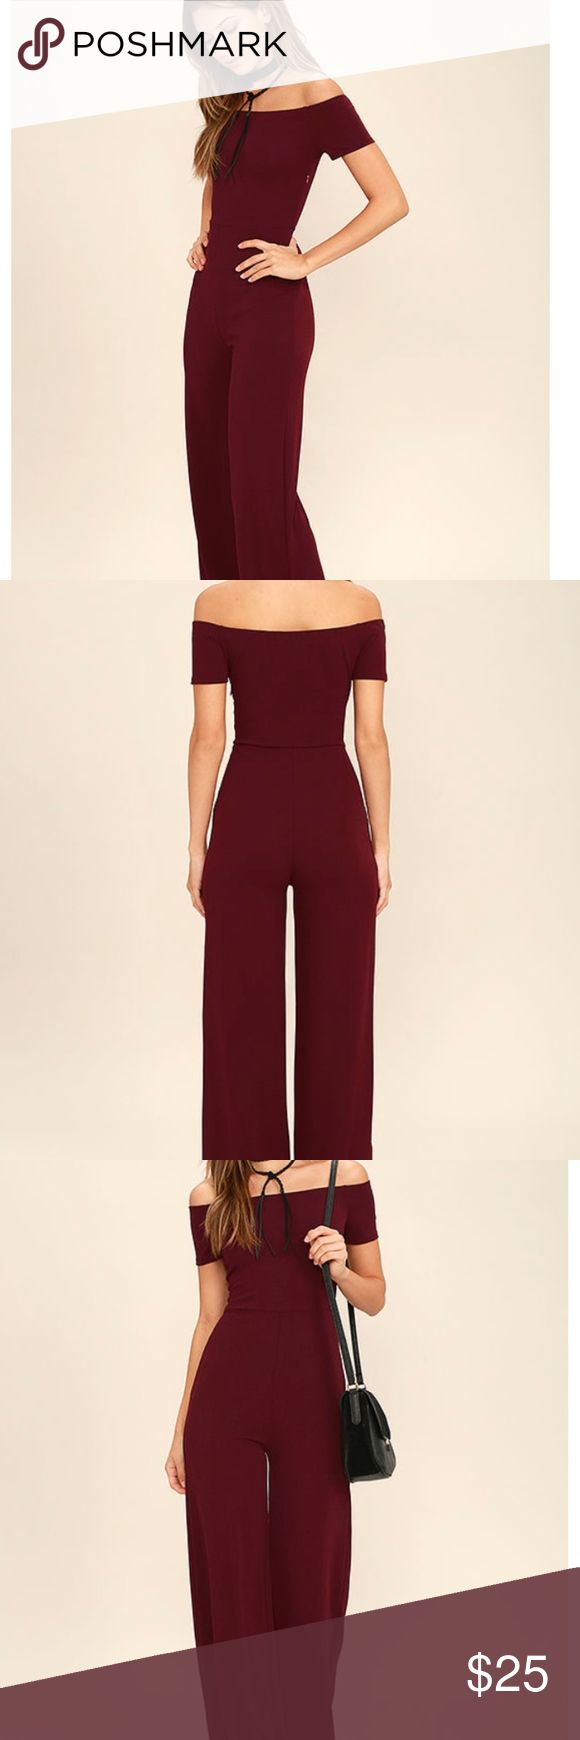 Lulus Off the Shoulder Burgundy Jumpsuit Super cute and trendy off the shoulder jumpsuit. This is great for fall! Only worn once for a formal event, and got so many compliments on it! This jumpsuit is still in stock on Lulu's, so you can get this in perfect condition here at a discounted price! Lulu's Dresses